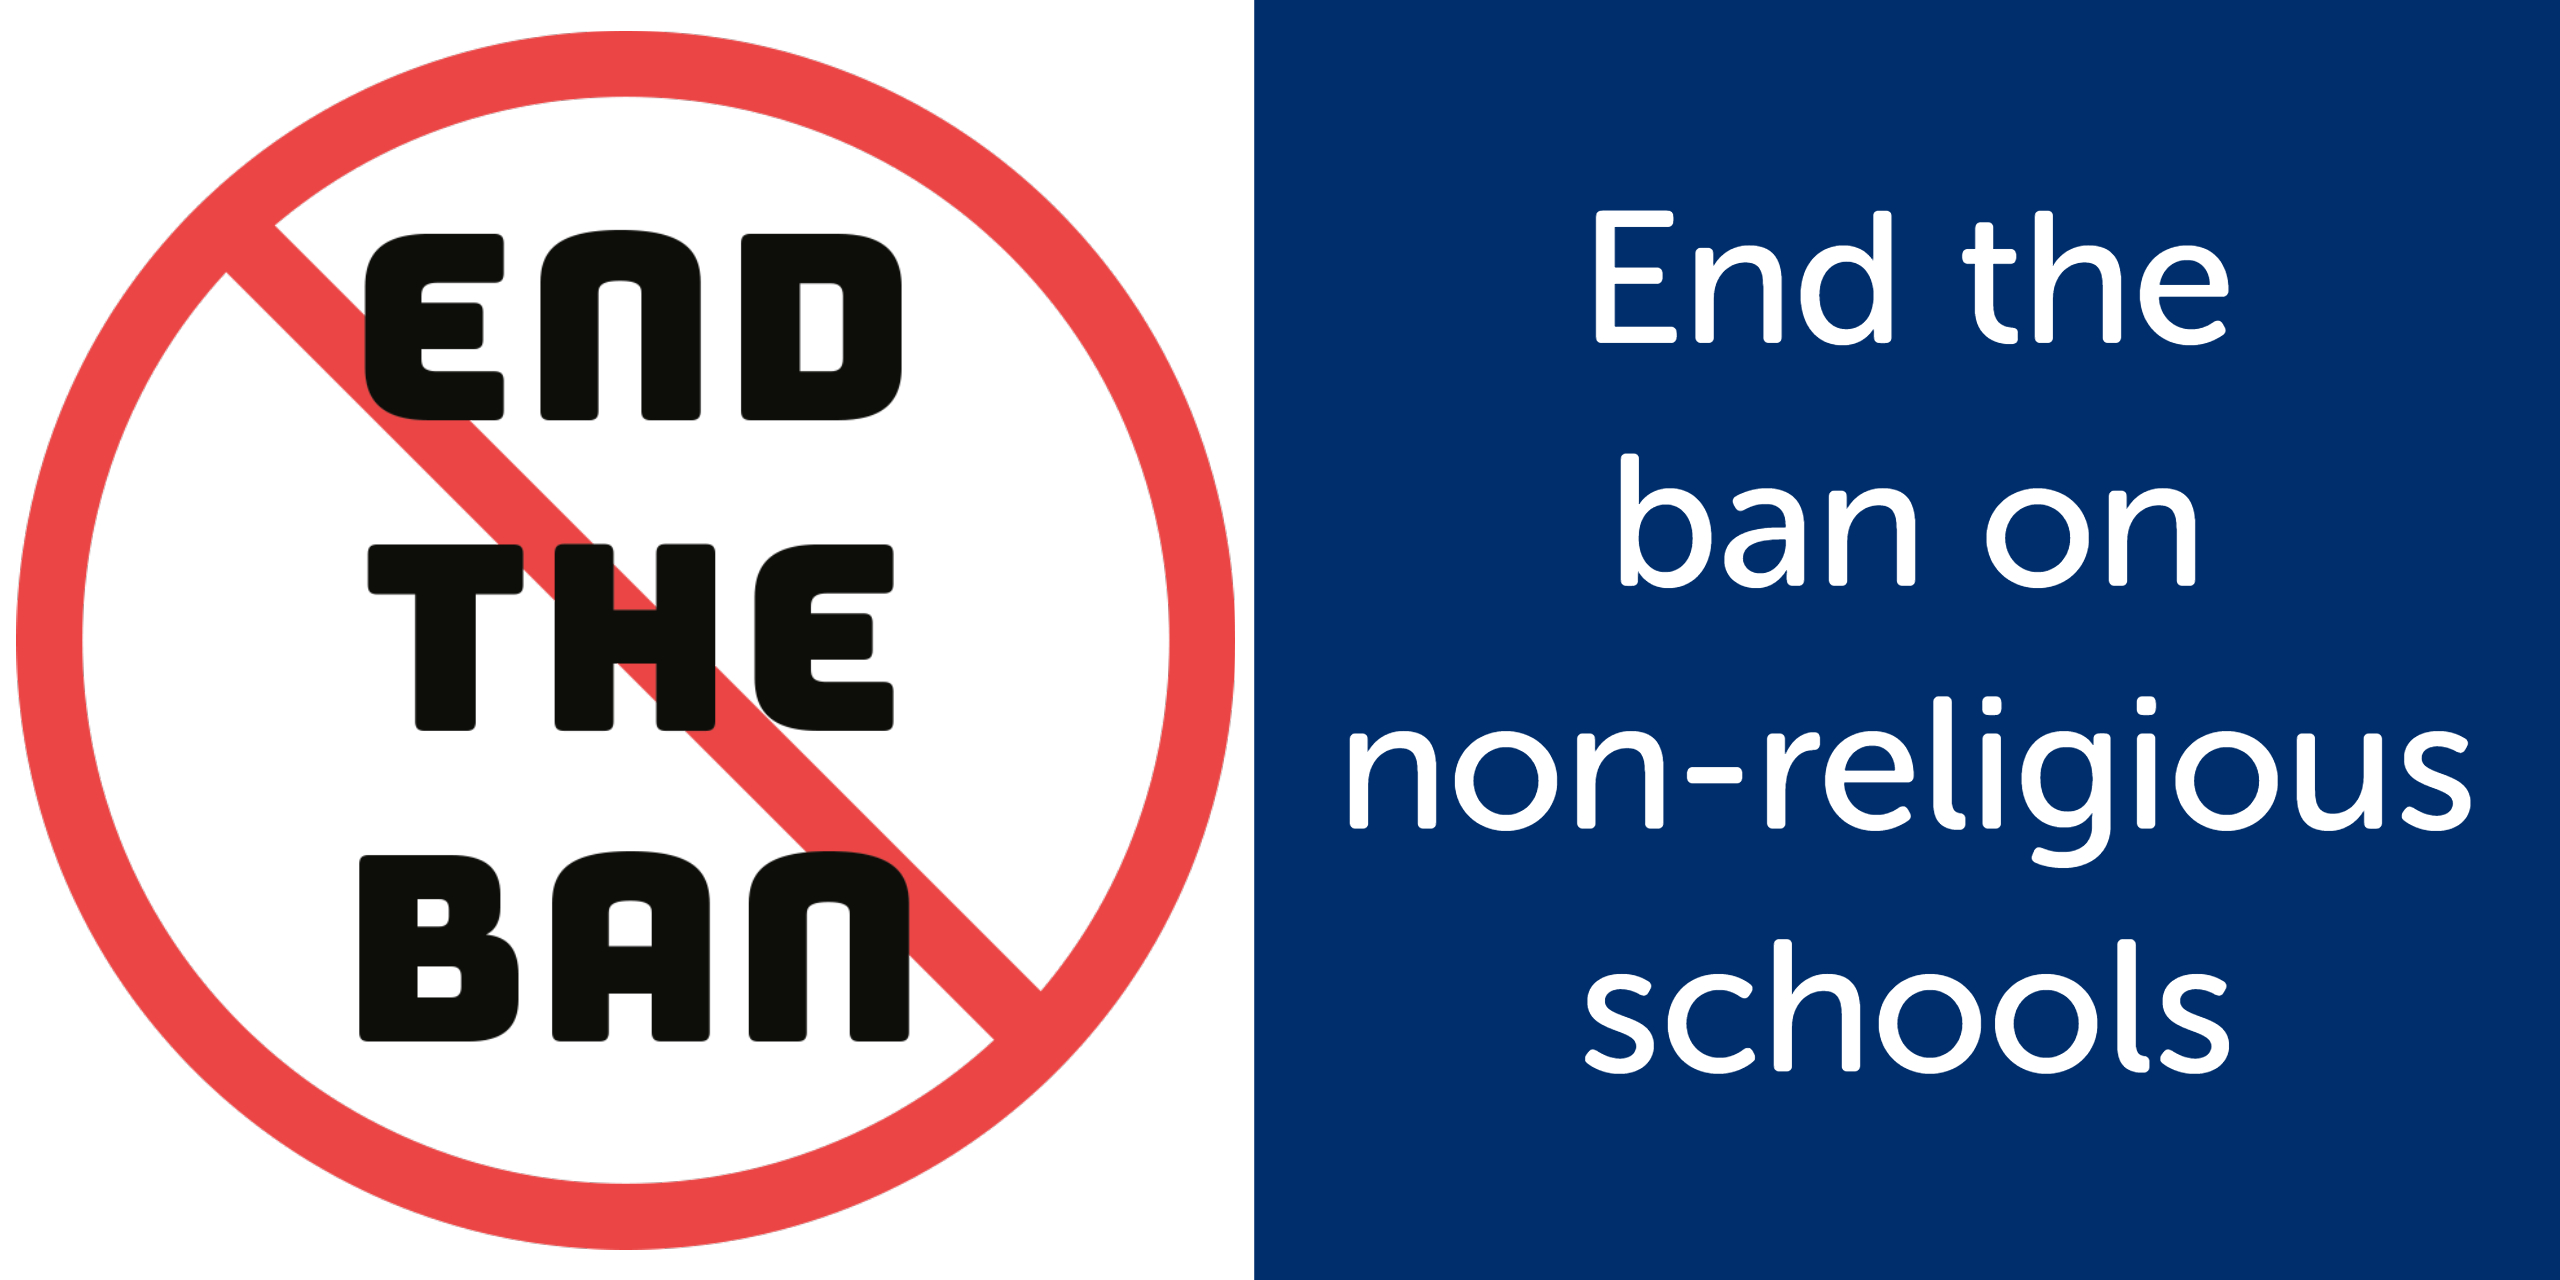 End The Ban on Non-Religious Schools